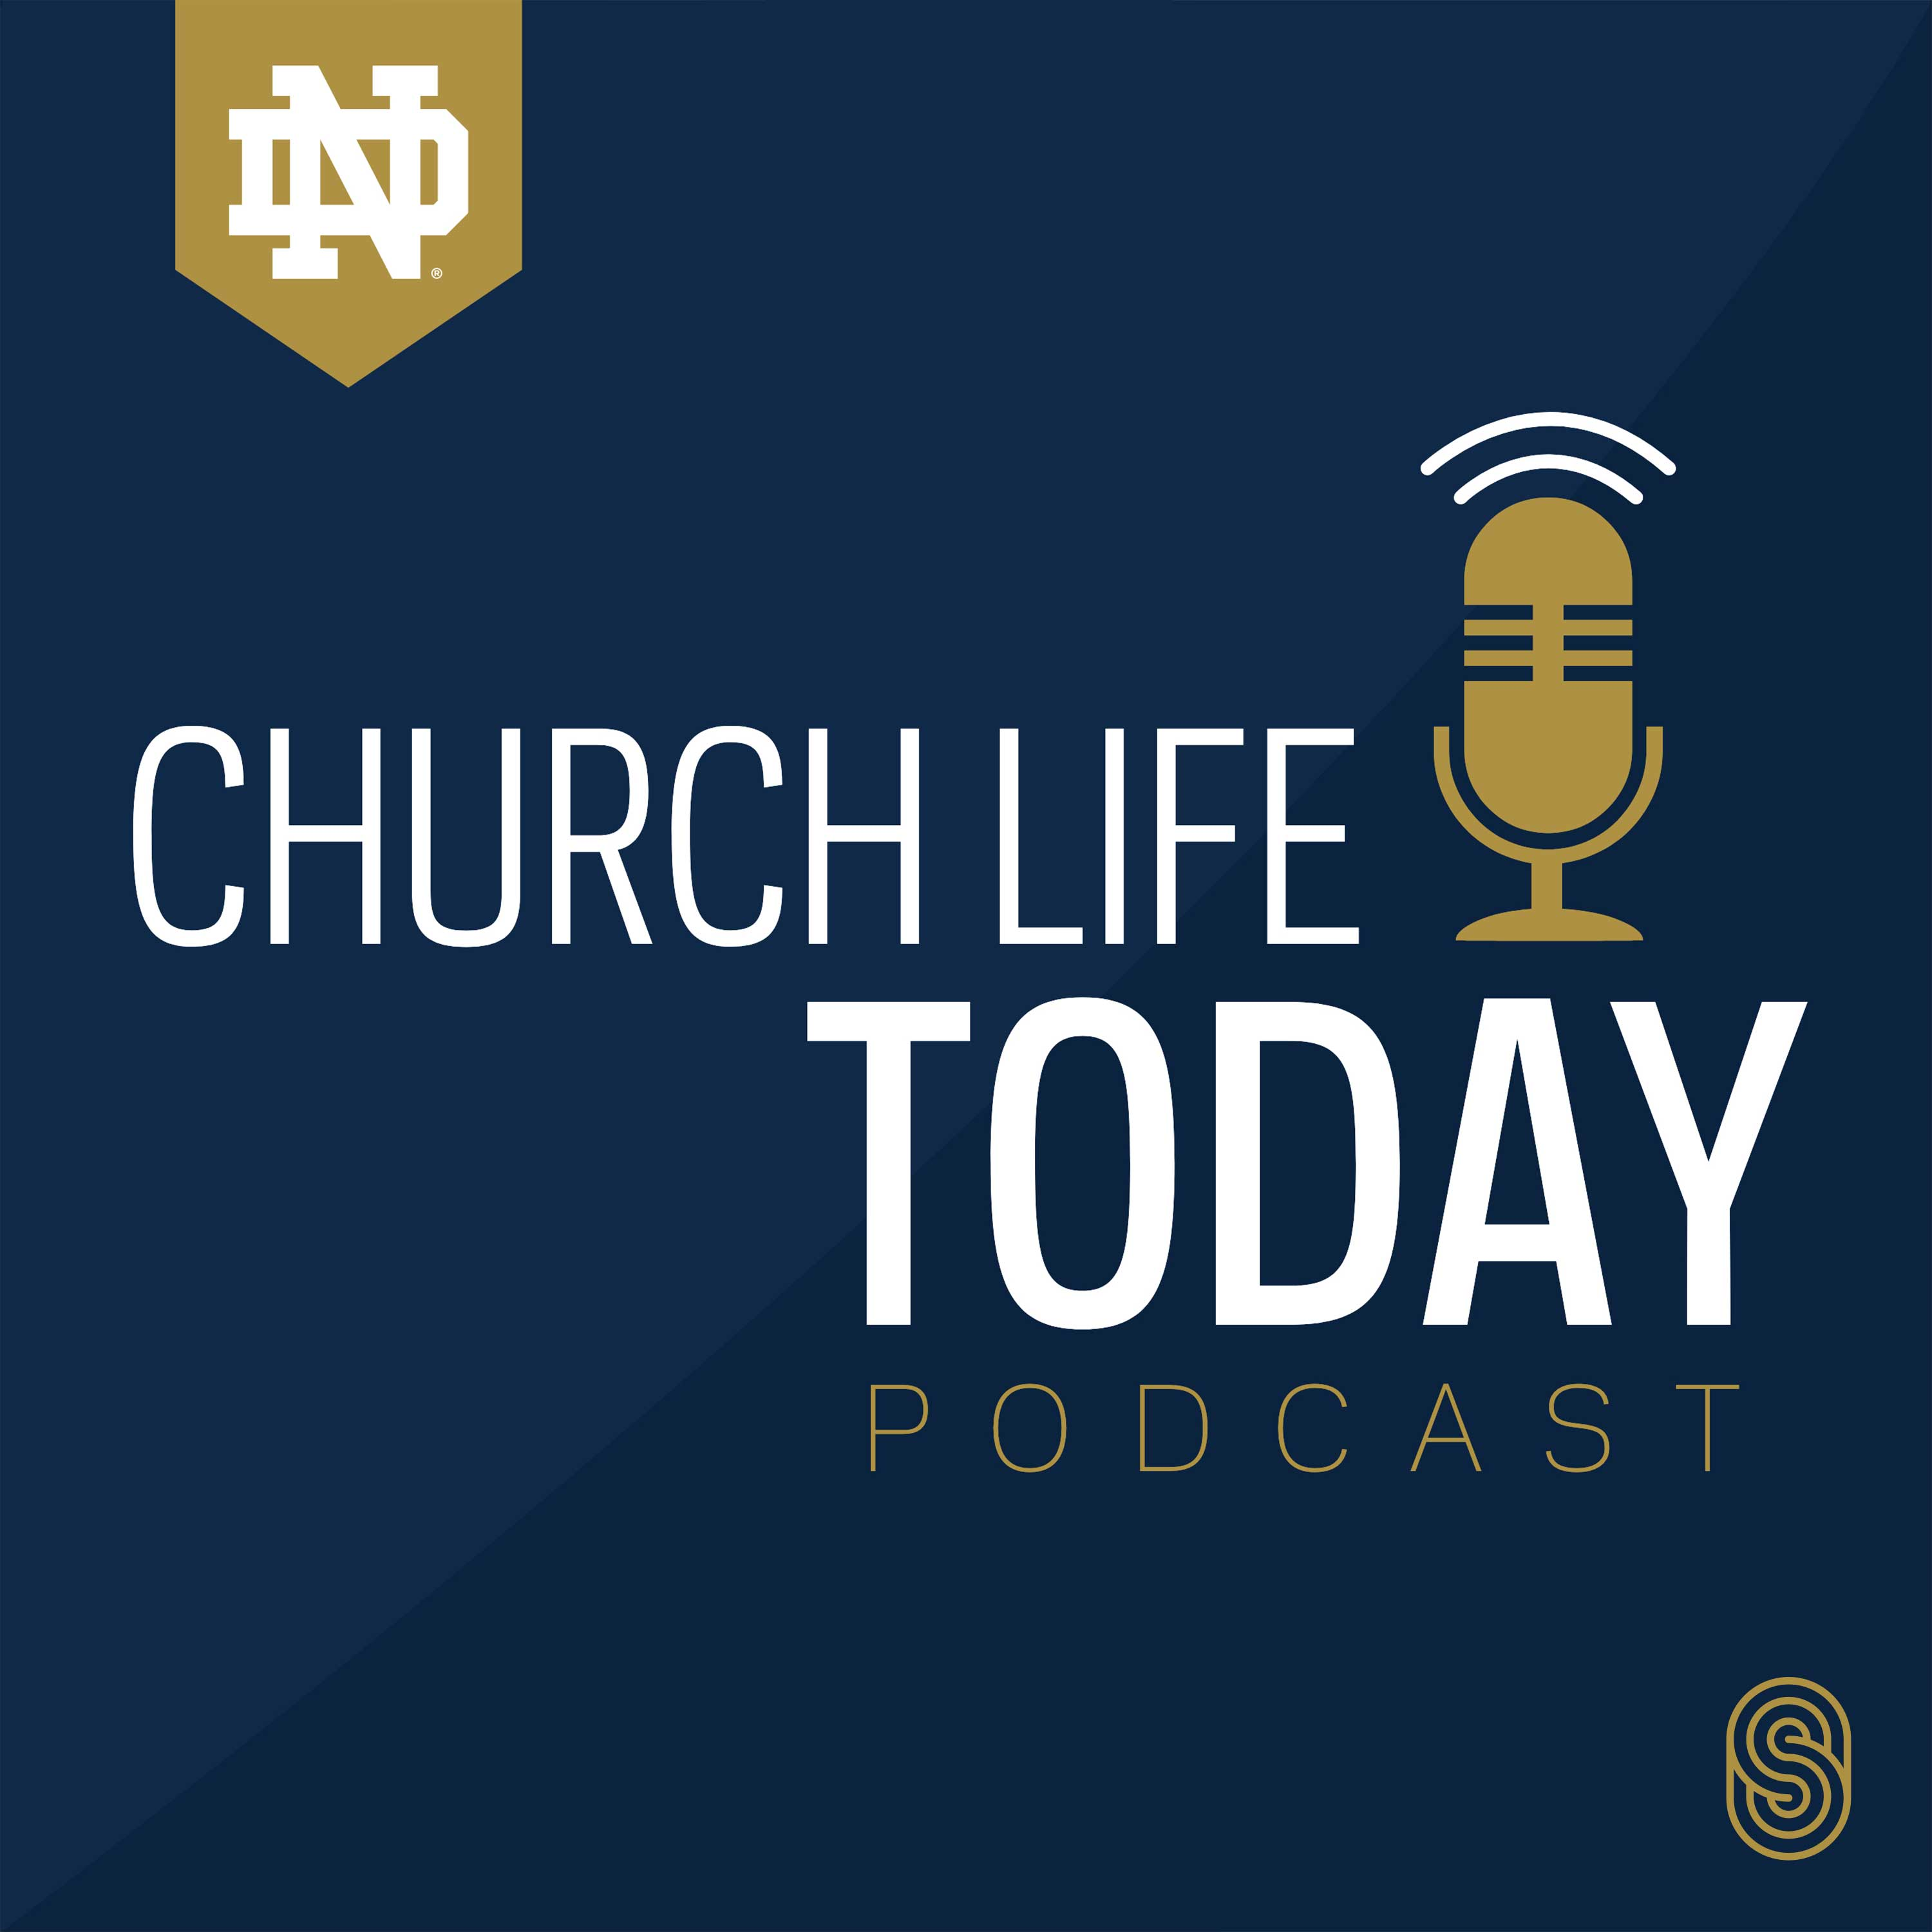 Artwork for podcast Church Life Today